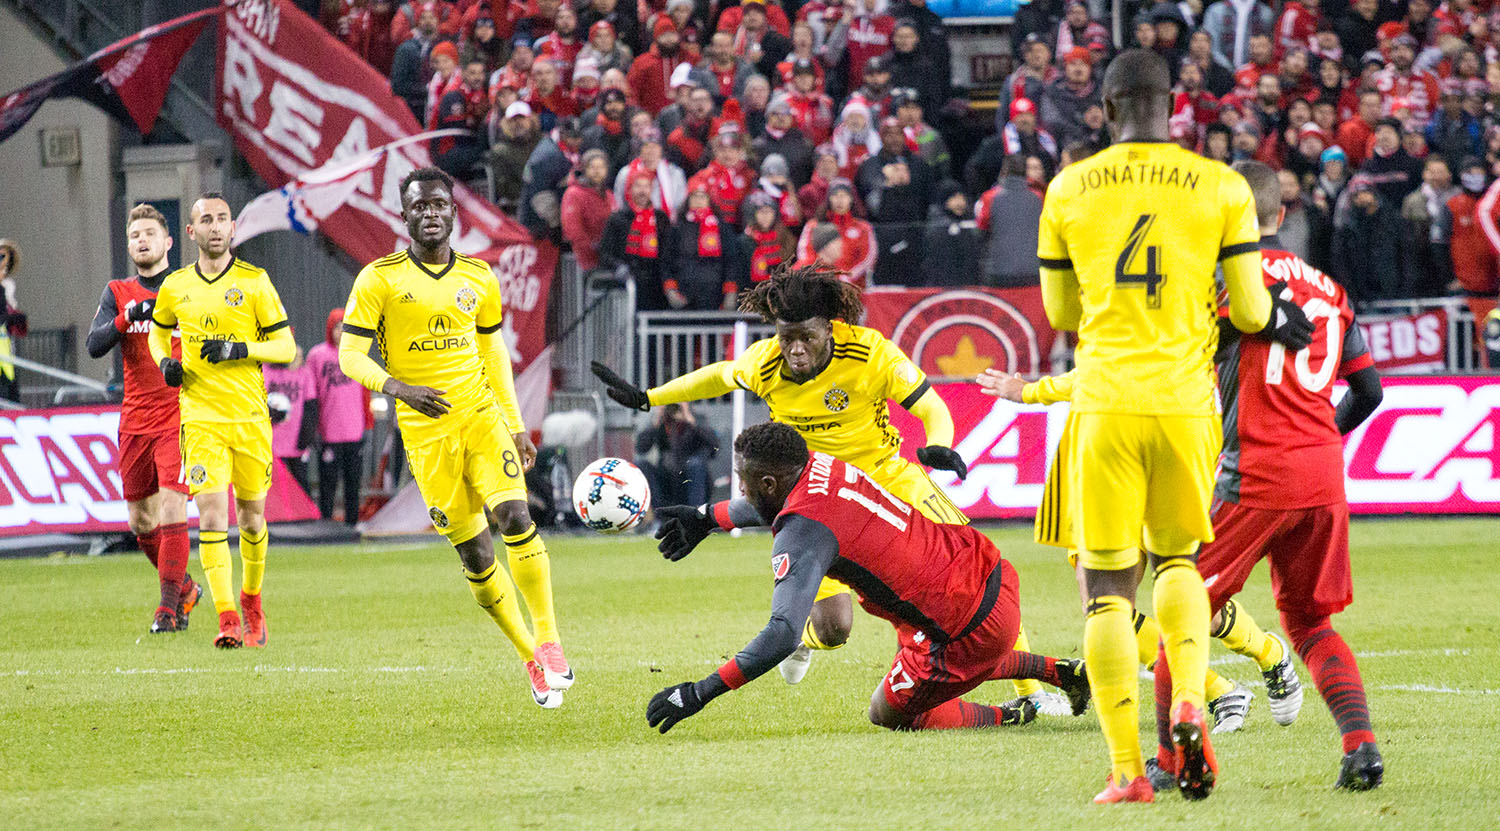 Jozy Altidore is taken down to the ground during the first half of play.Image by Dennis Marciniak of denMAR Media.